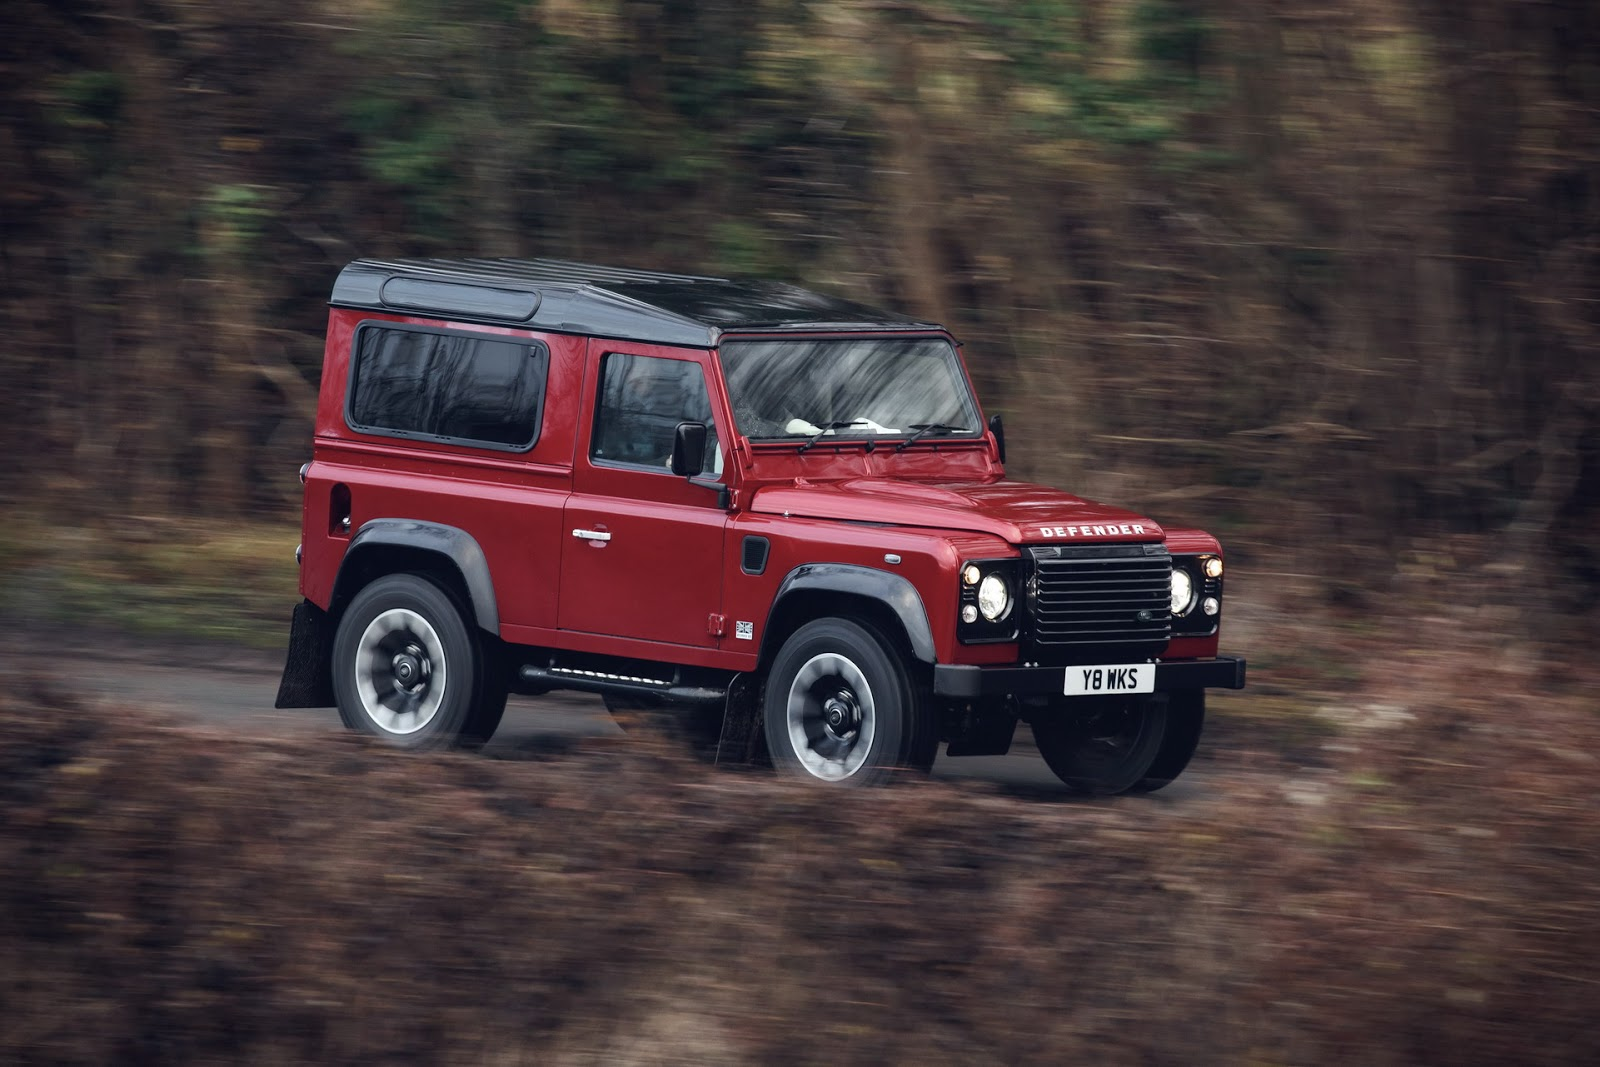 https://s1.cdn.autoevolution.com/images/news/land-rover-sold-out-the-defender-works-v8-one-month-after-the-debut-123892_1.jpg